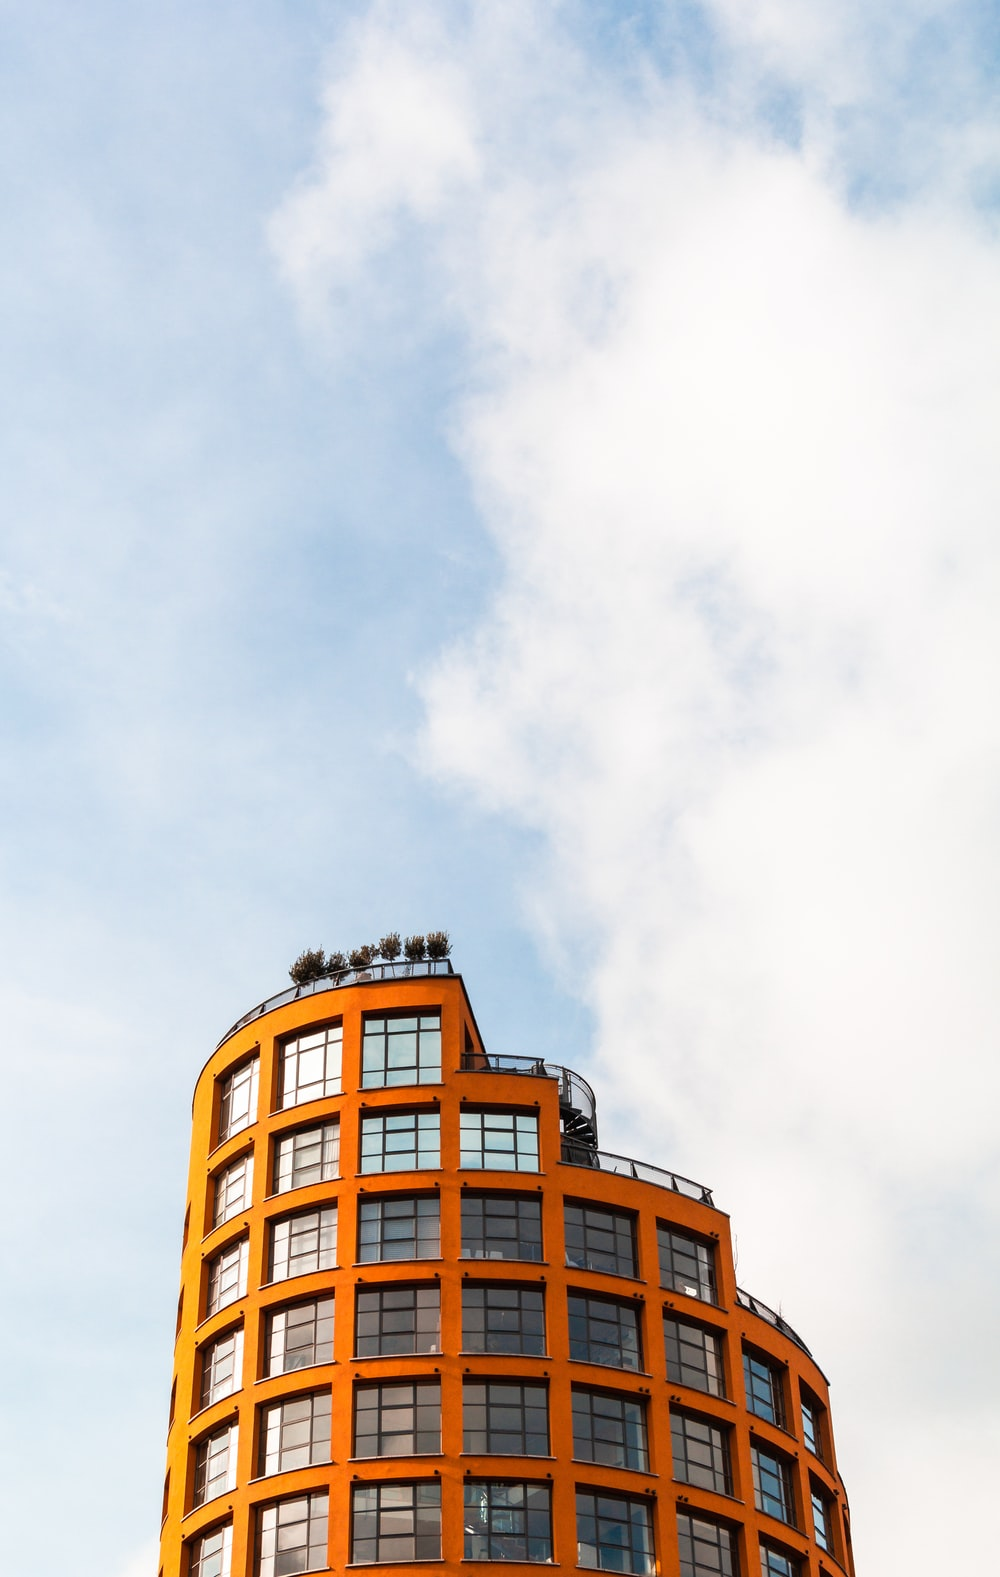 orange and clear curtain building during day time